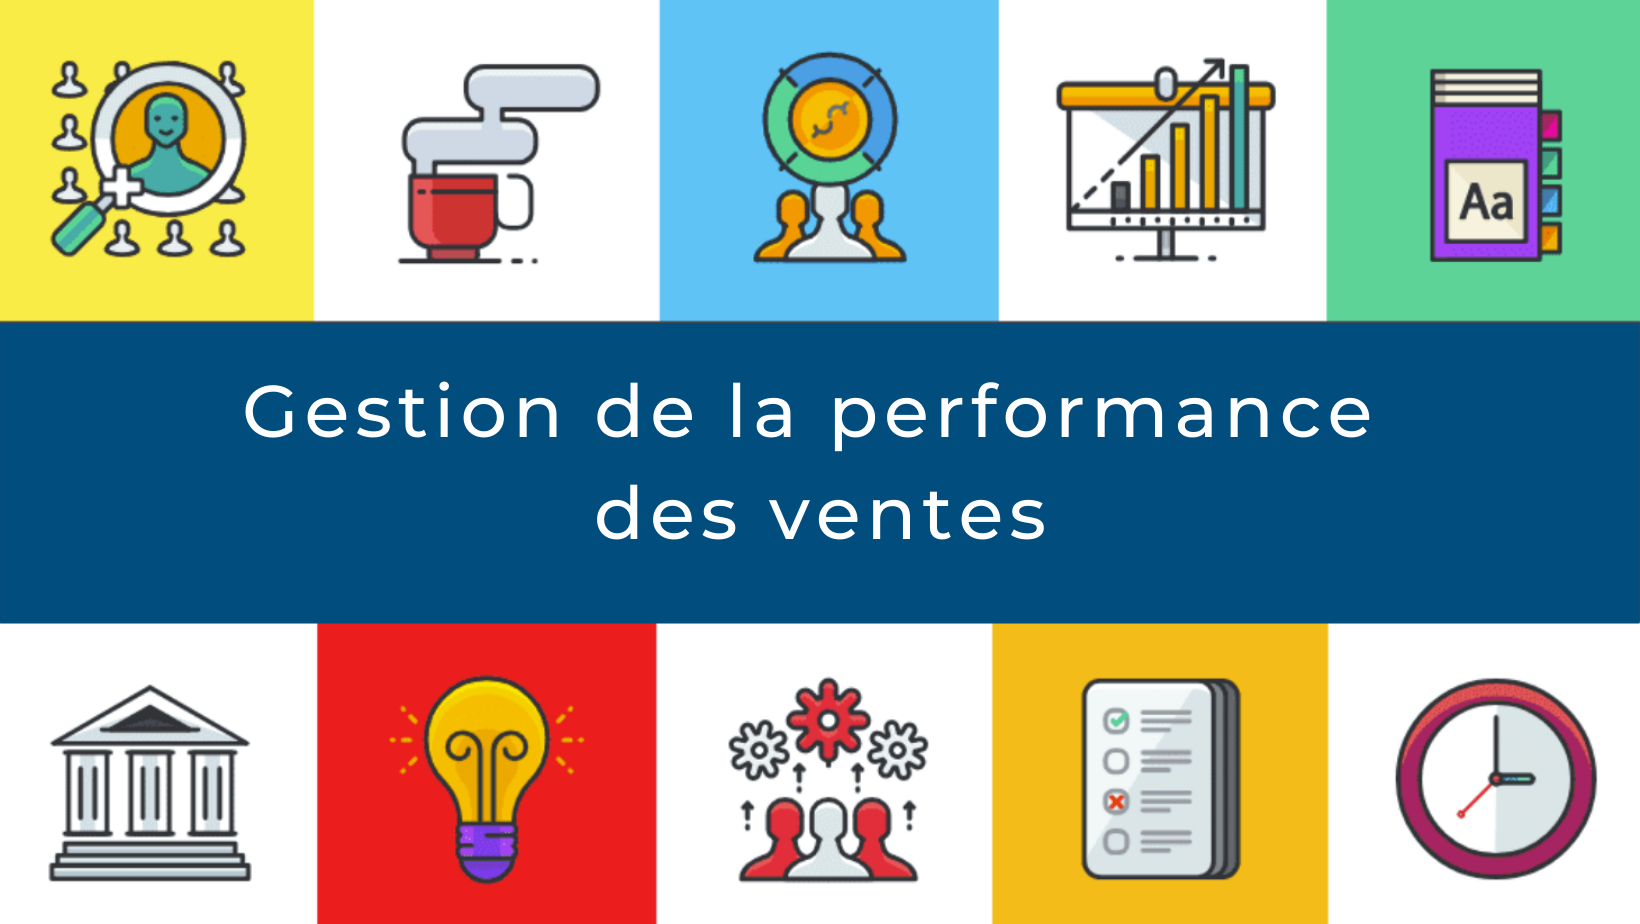 Gestion de la performance des ventes